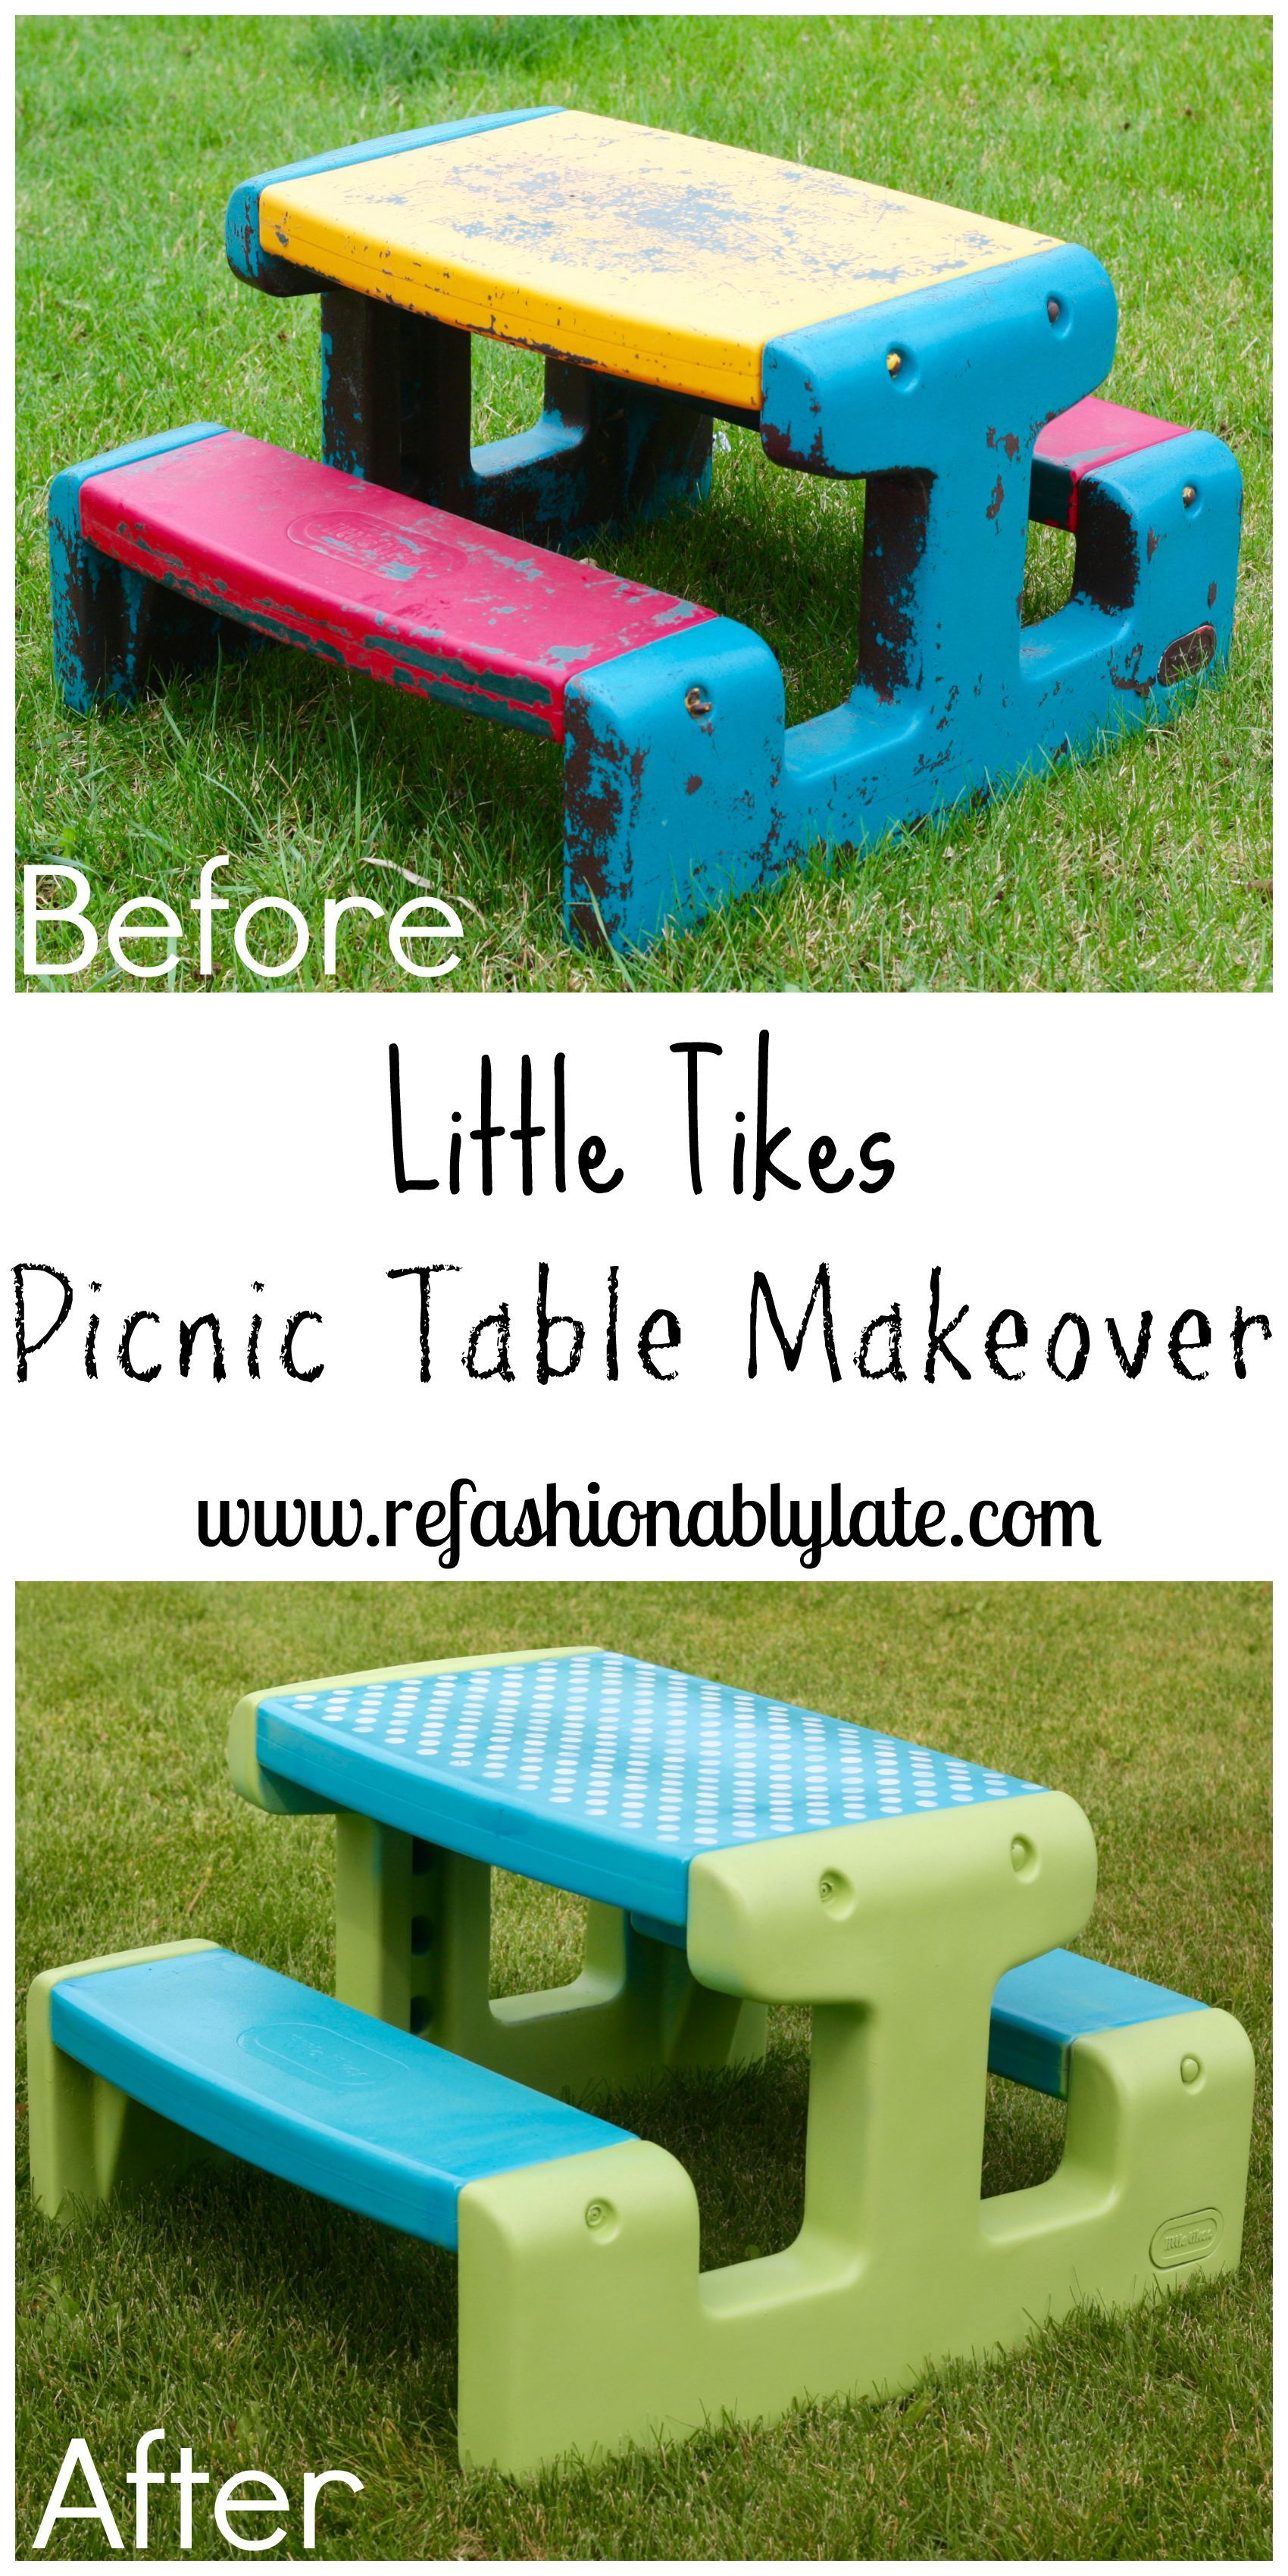 Little Tikes Picnic Table Makeover Www Refashionablylate